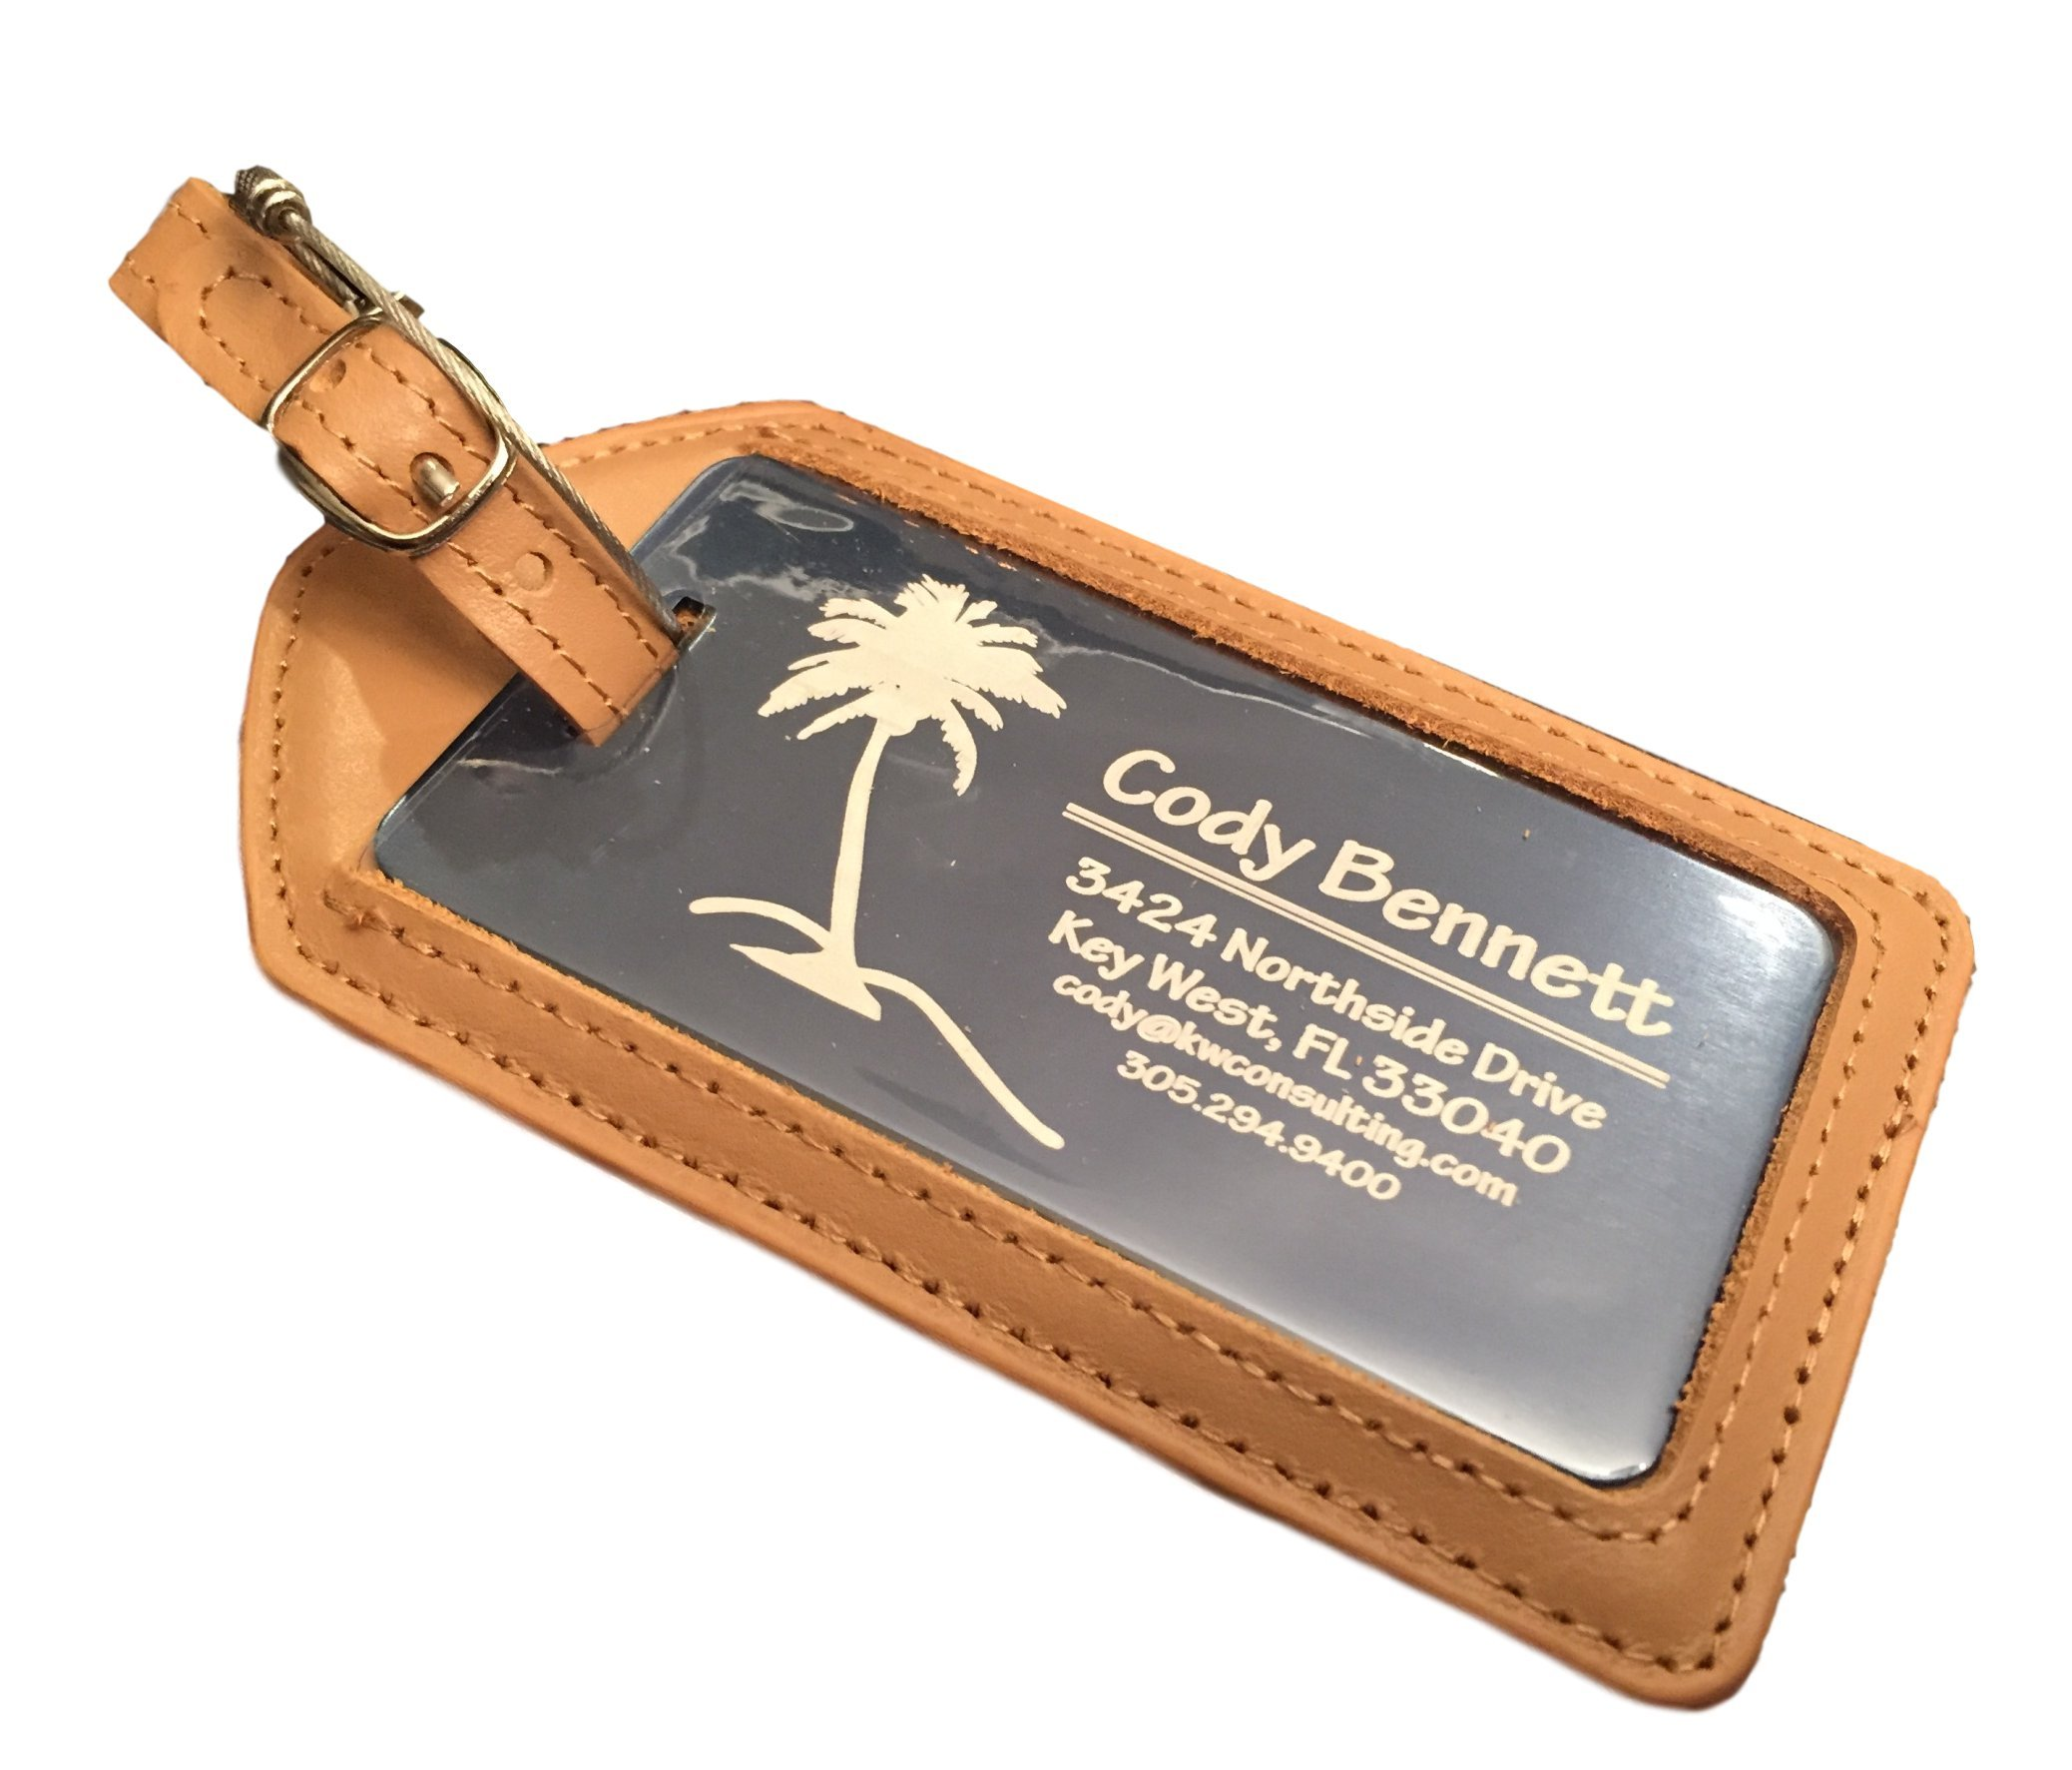 Qualtry Personalized Luggage Tags with Genuine Leather Case - Engraved Aluminum Luggage Tag, Suitcase Name Tags (Coral Leather Case)